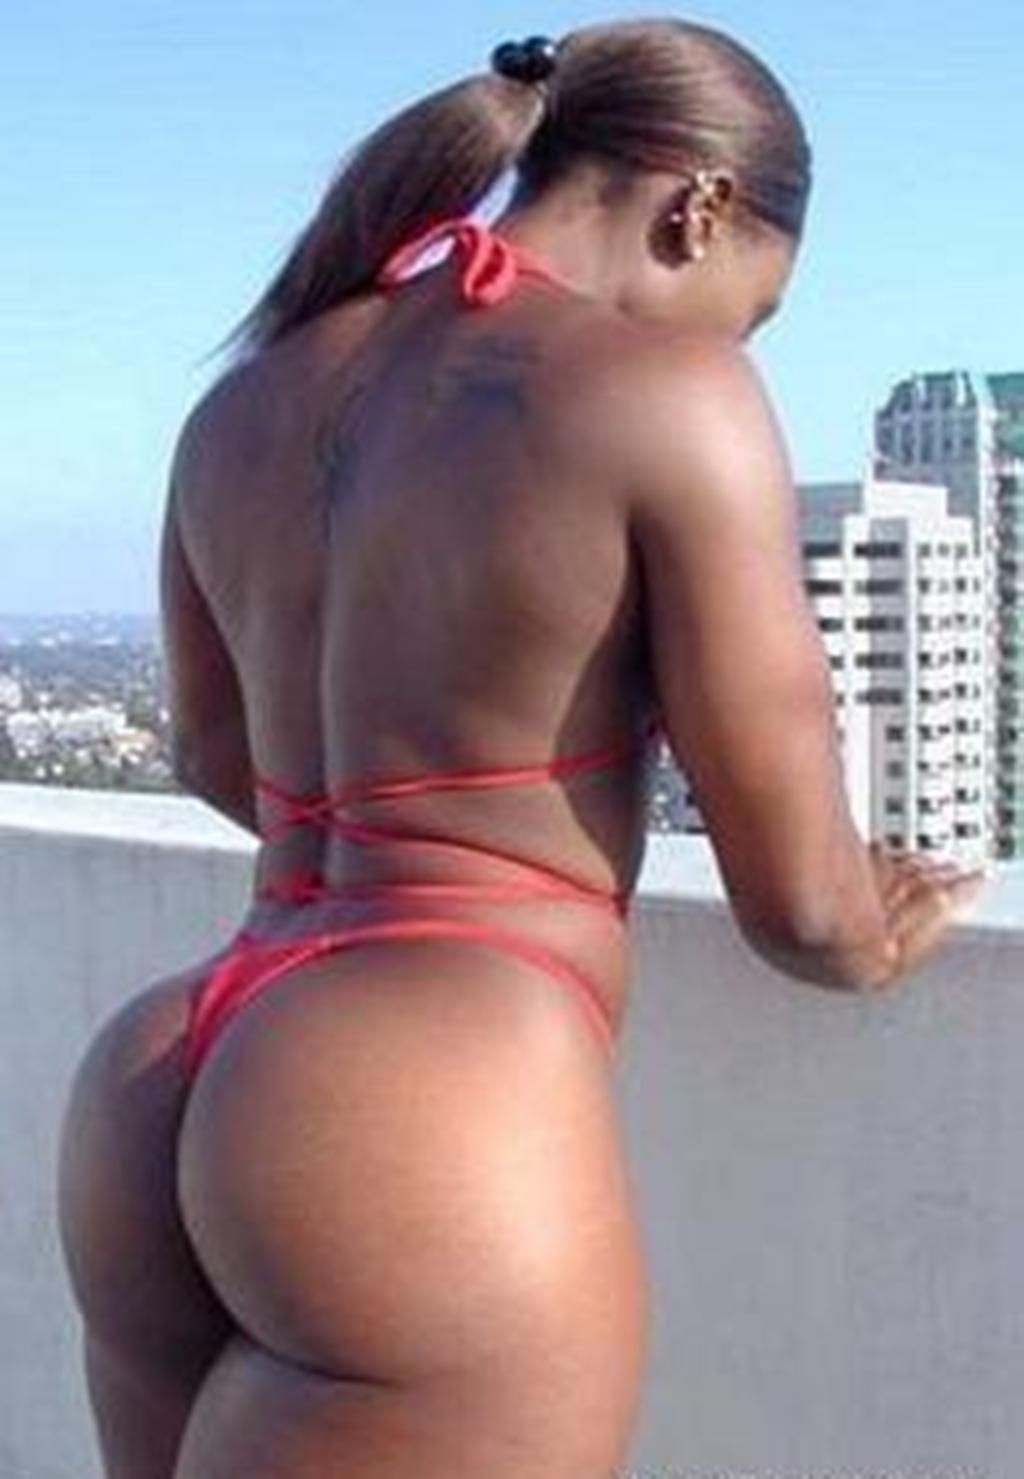 Serena Big Ass Bending Over Pibs